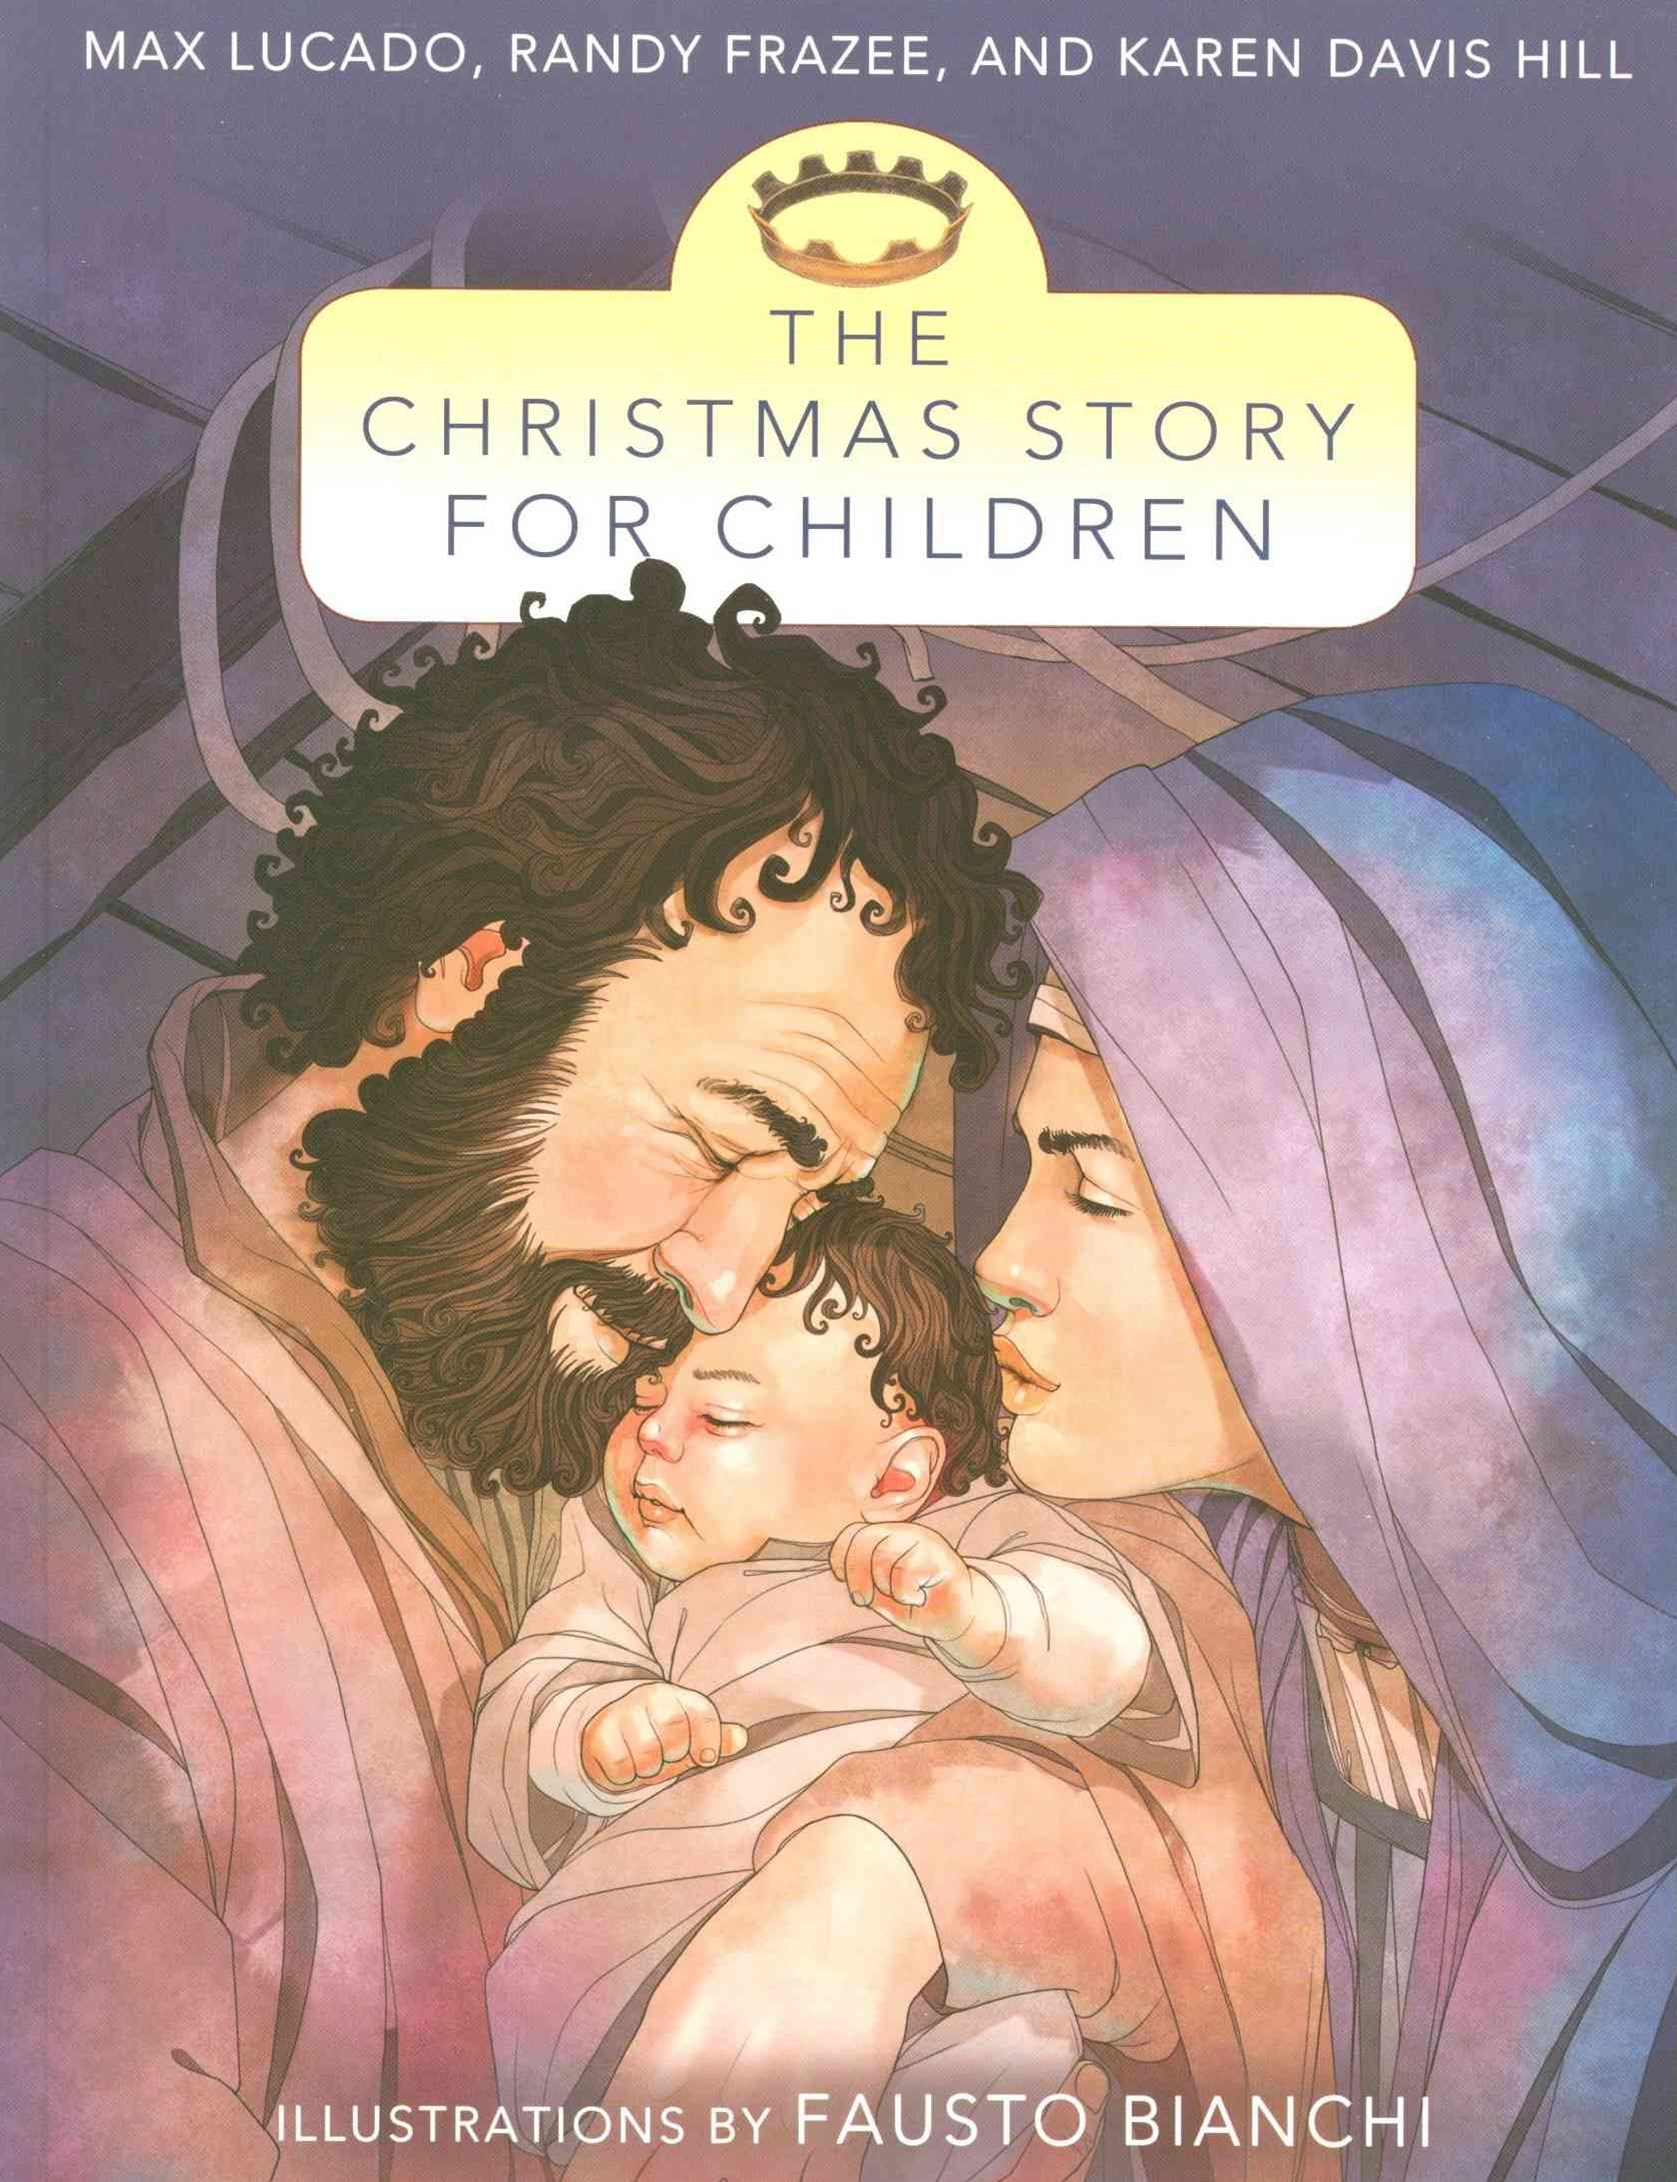 The Christmas Story for Children